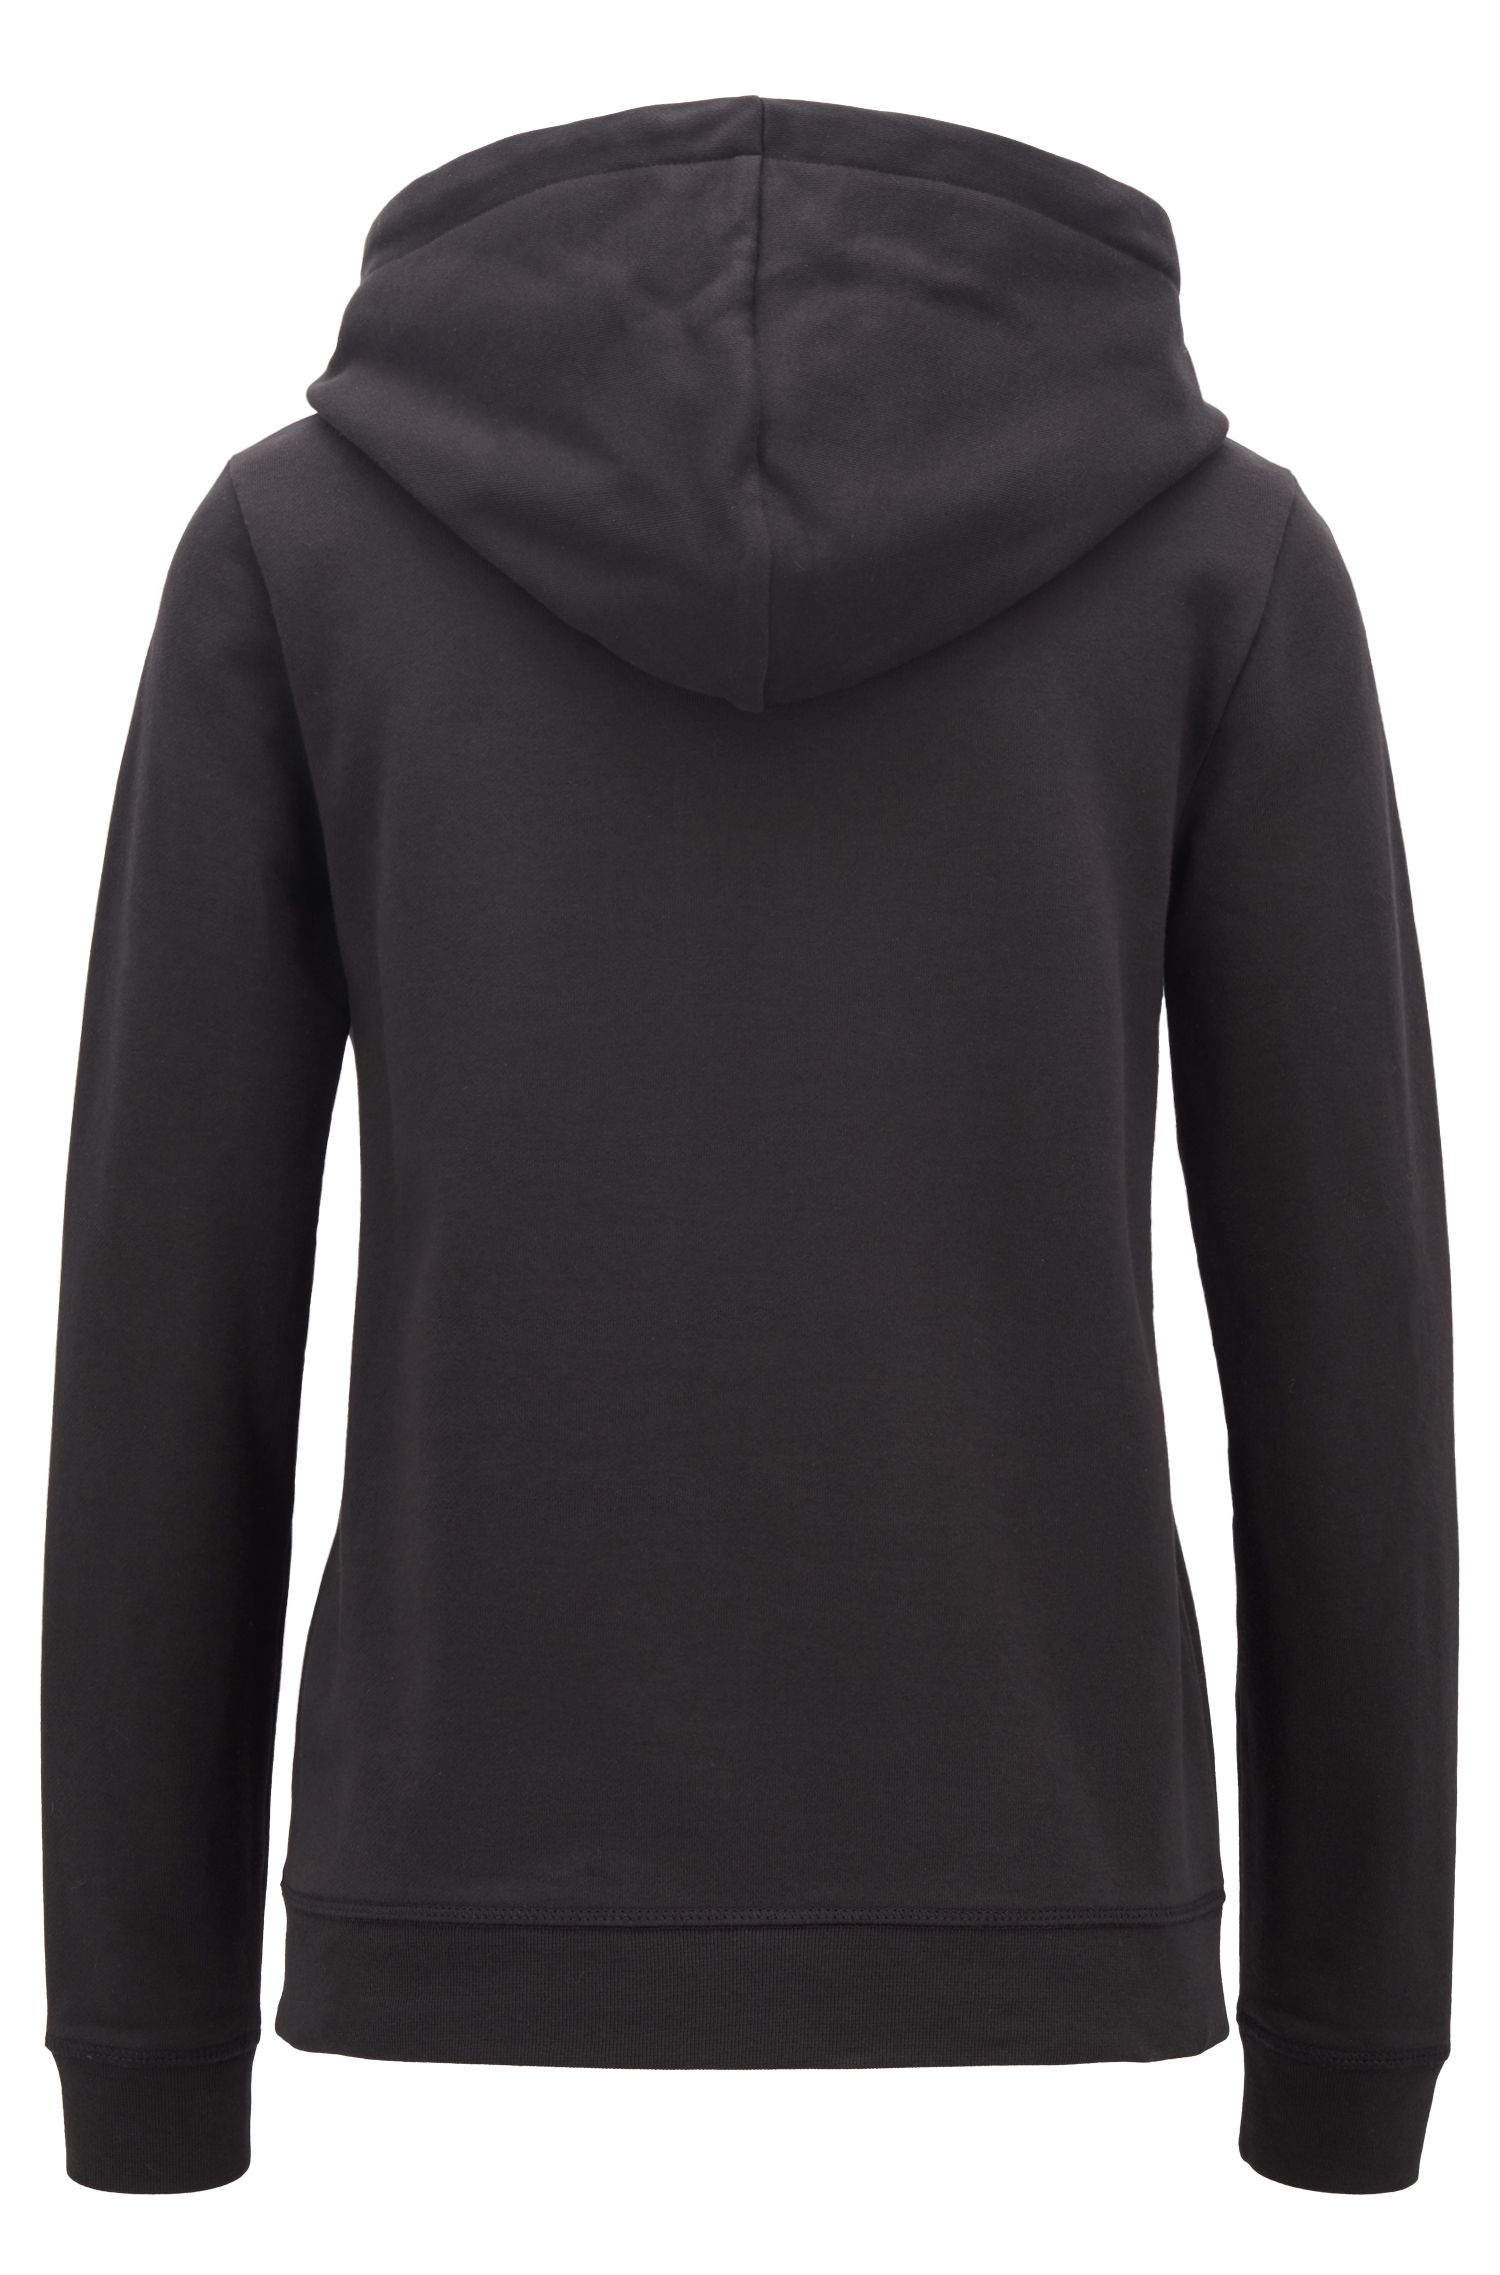 Hooded sweatshirt in French terry with printed drawstring tape, Black